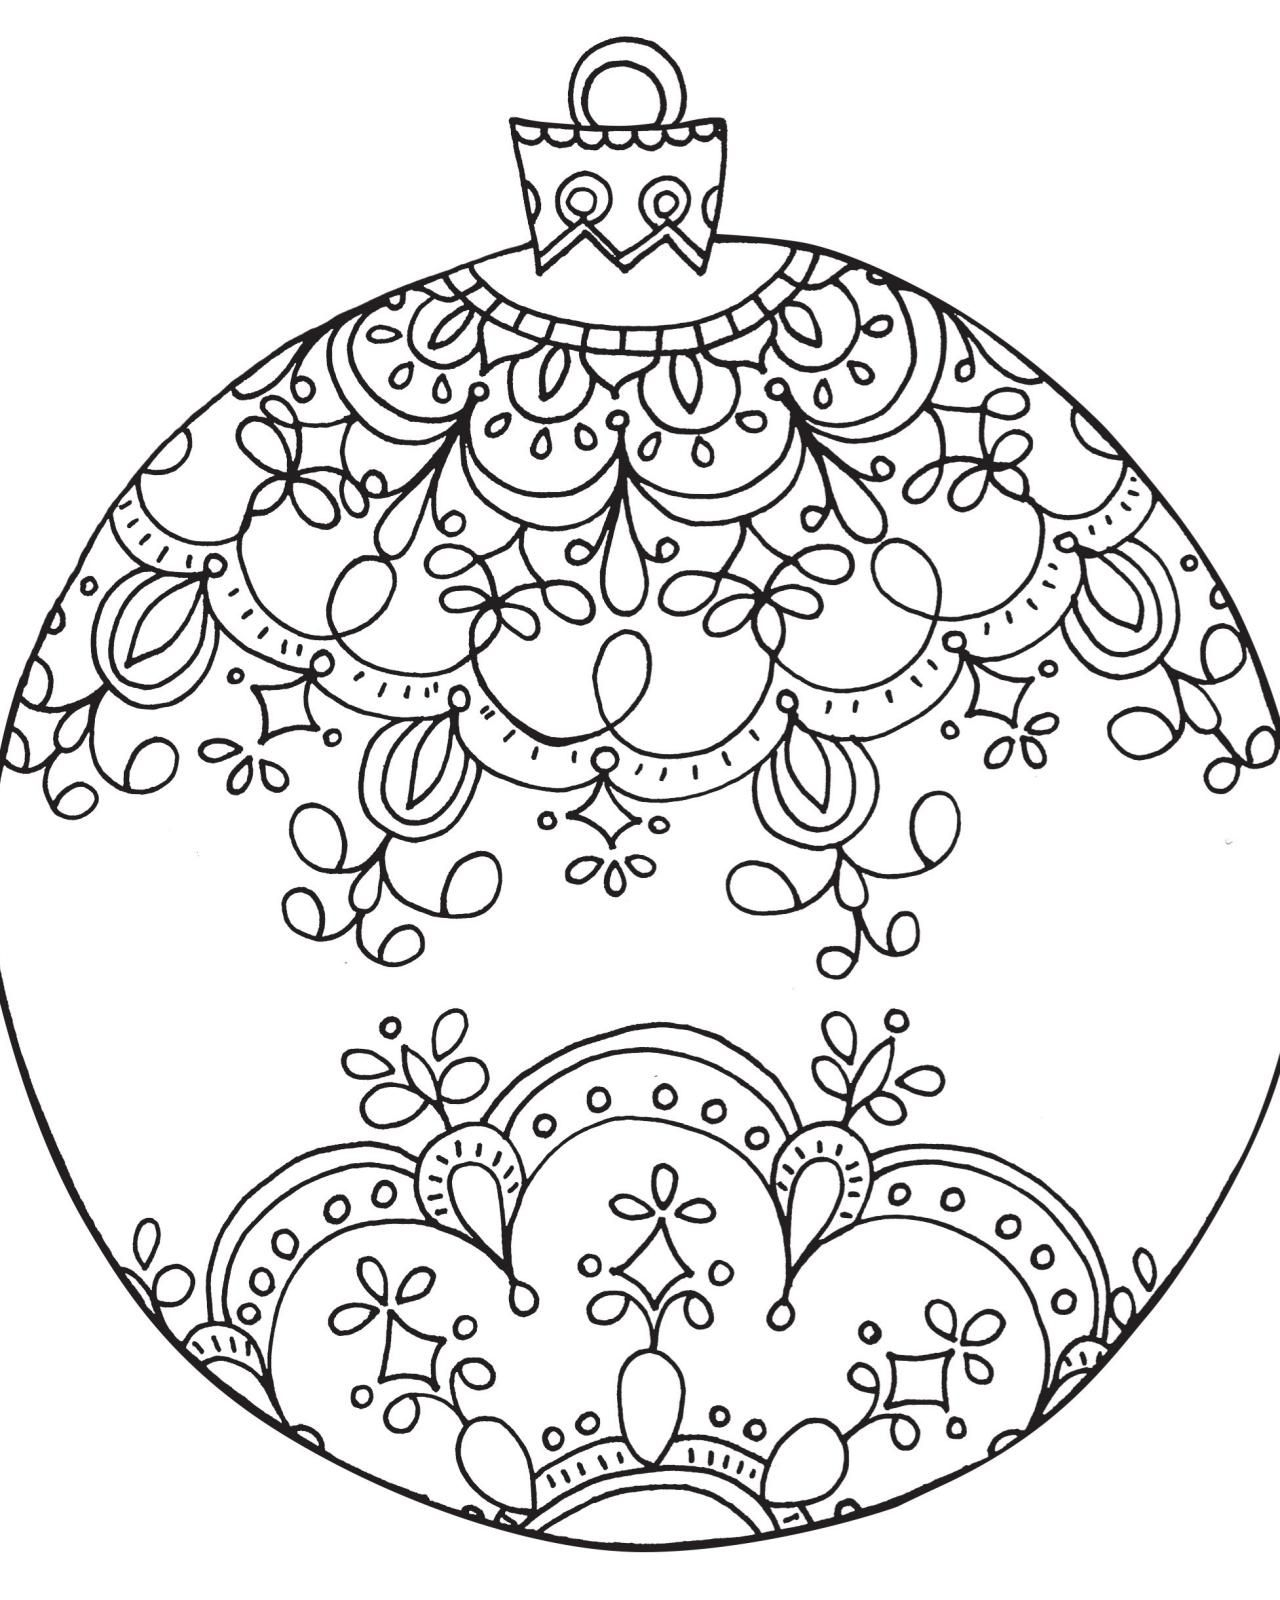 Christmas Mandalas Coloring Book With Mandala Pages Printable Gallery K Free